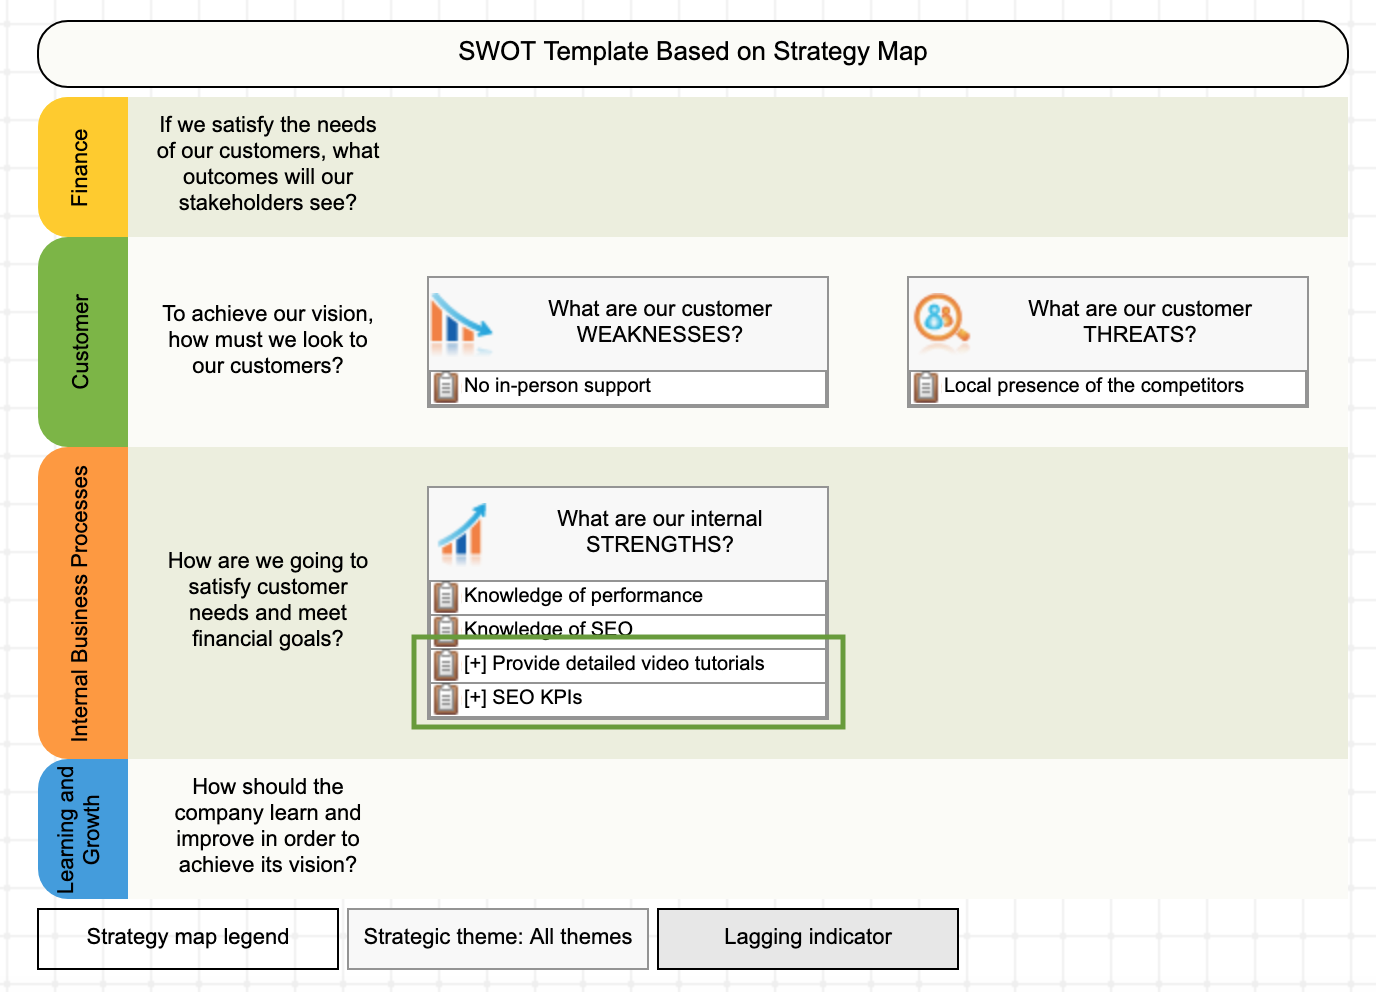 Using SWOT+S template - step 2